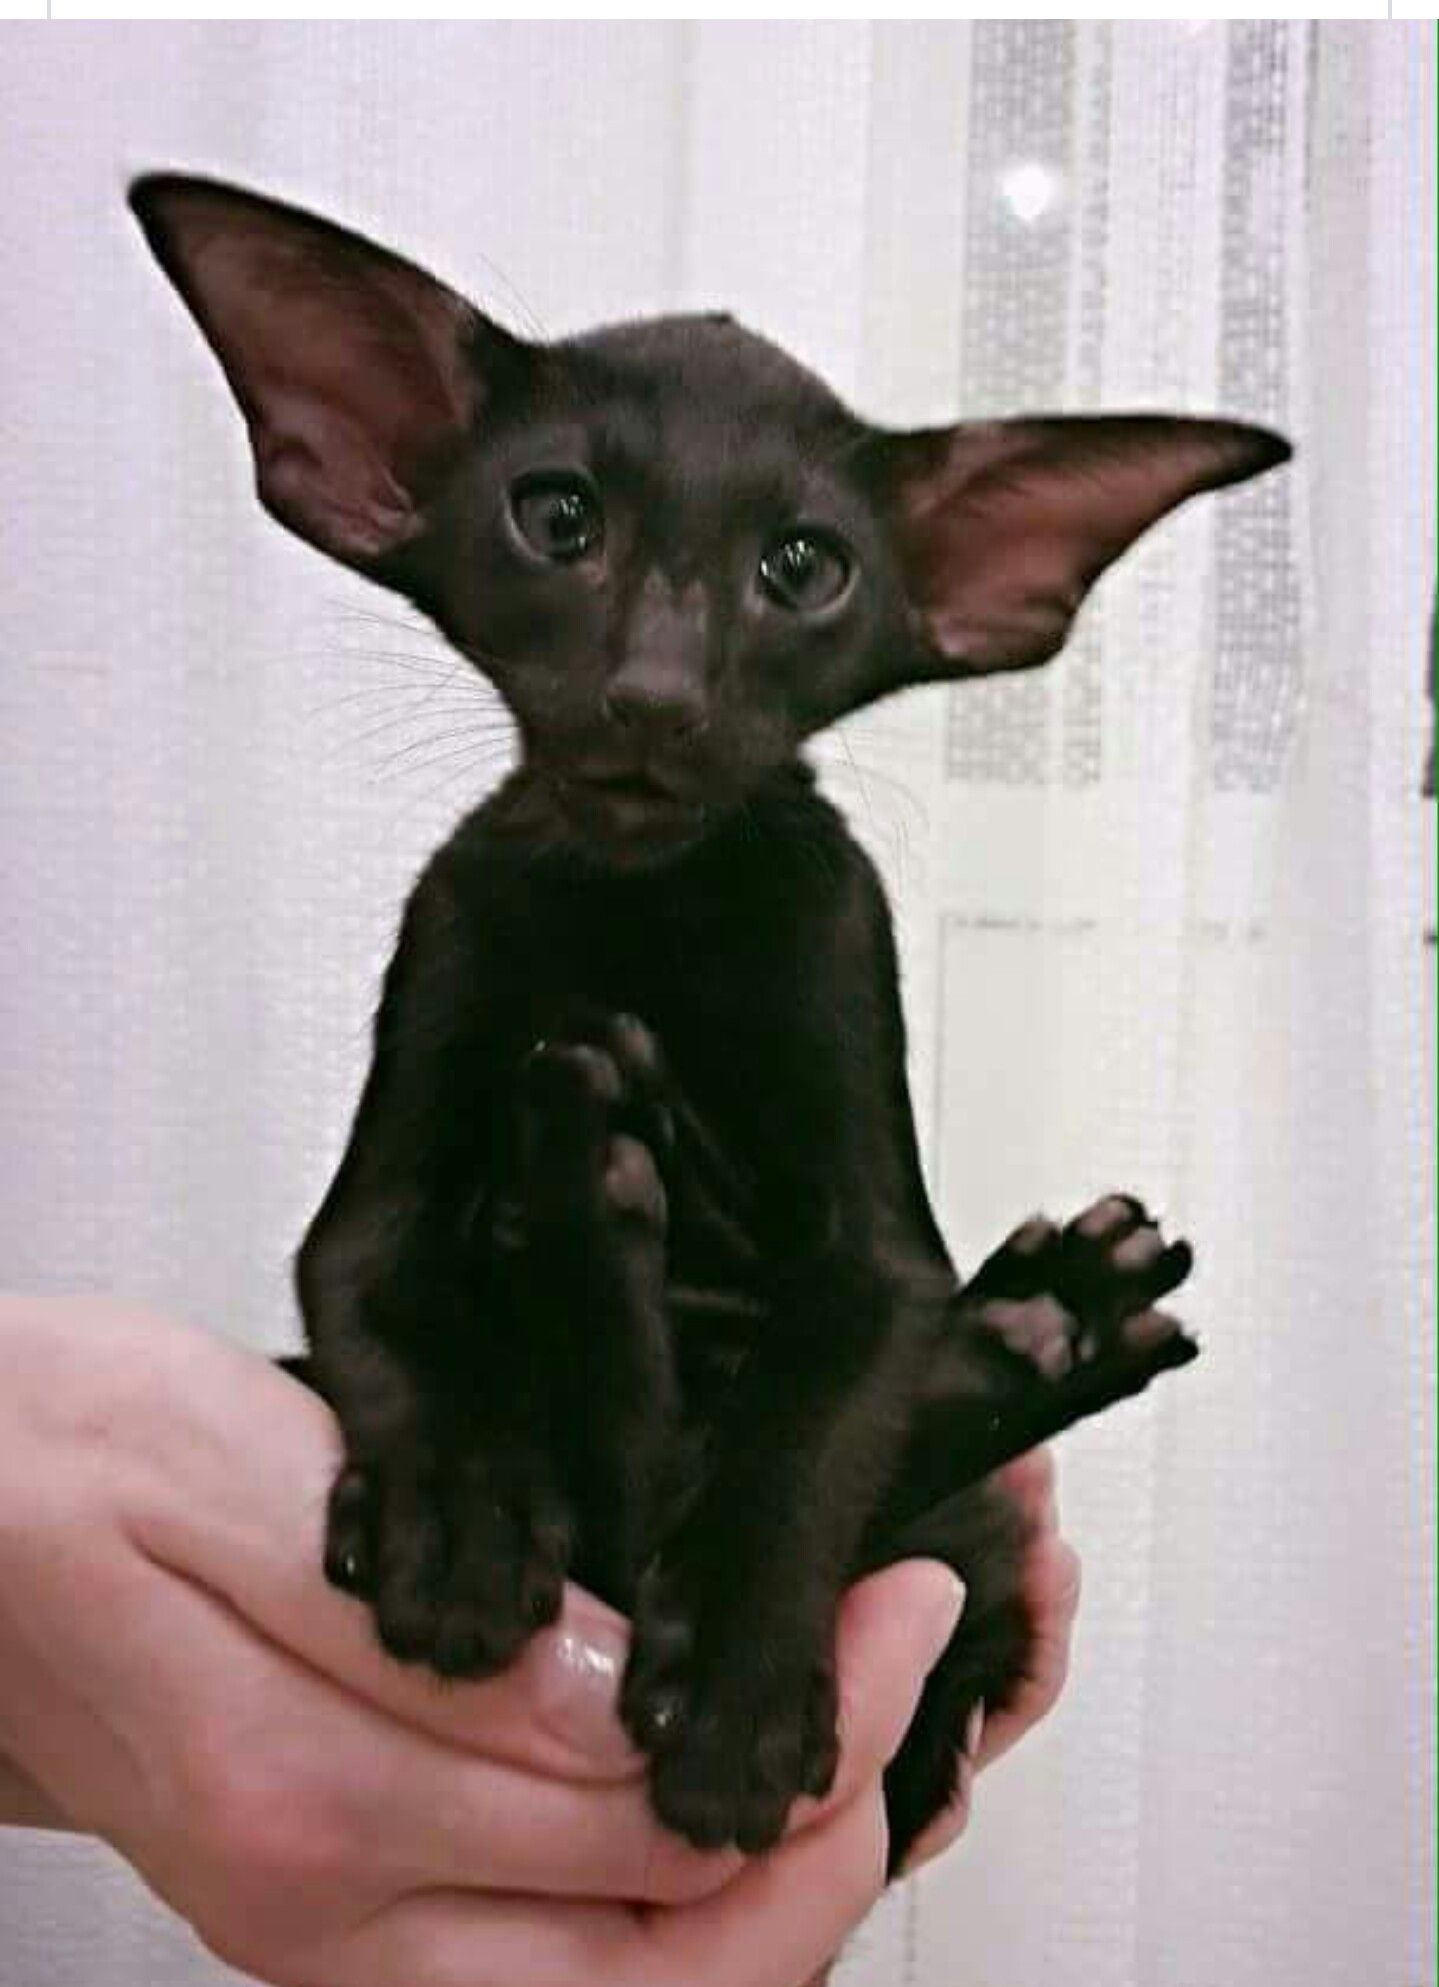 Kind of looks like a cross between a kitty and a bat but